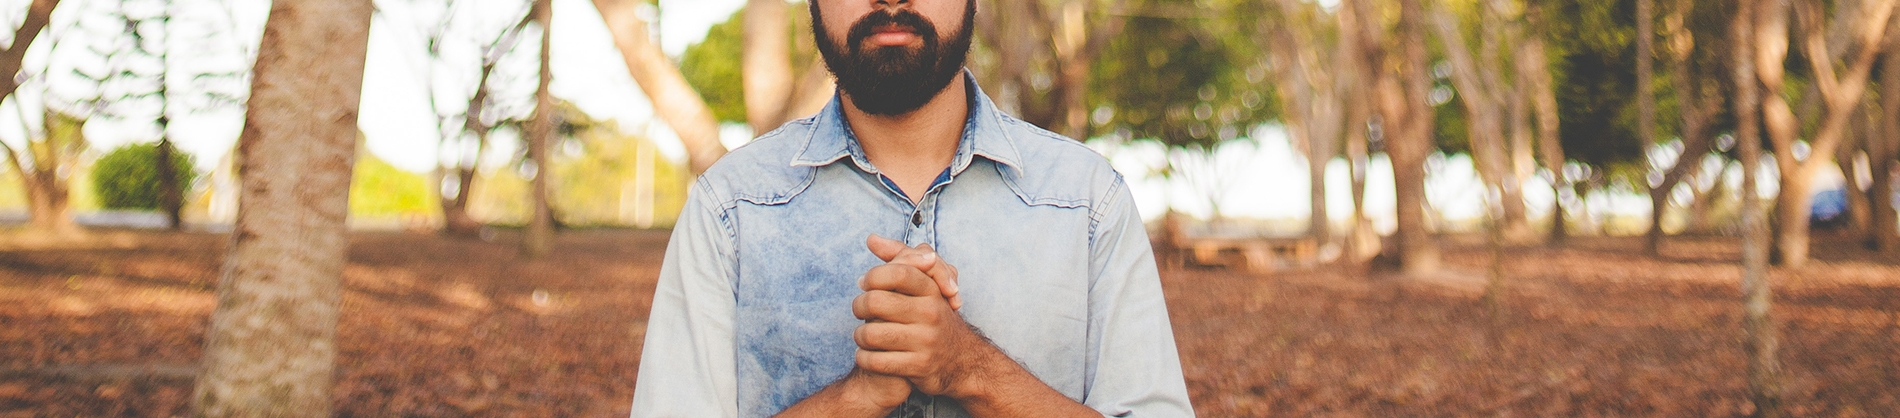 A man stood in a forest with his hand together in prayer